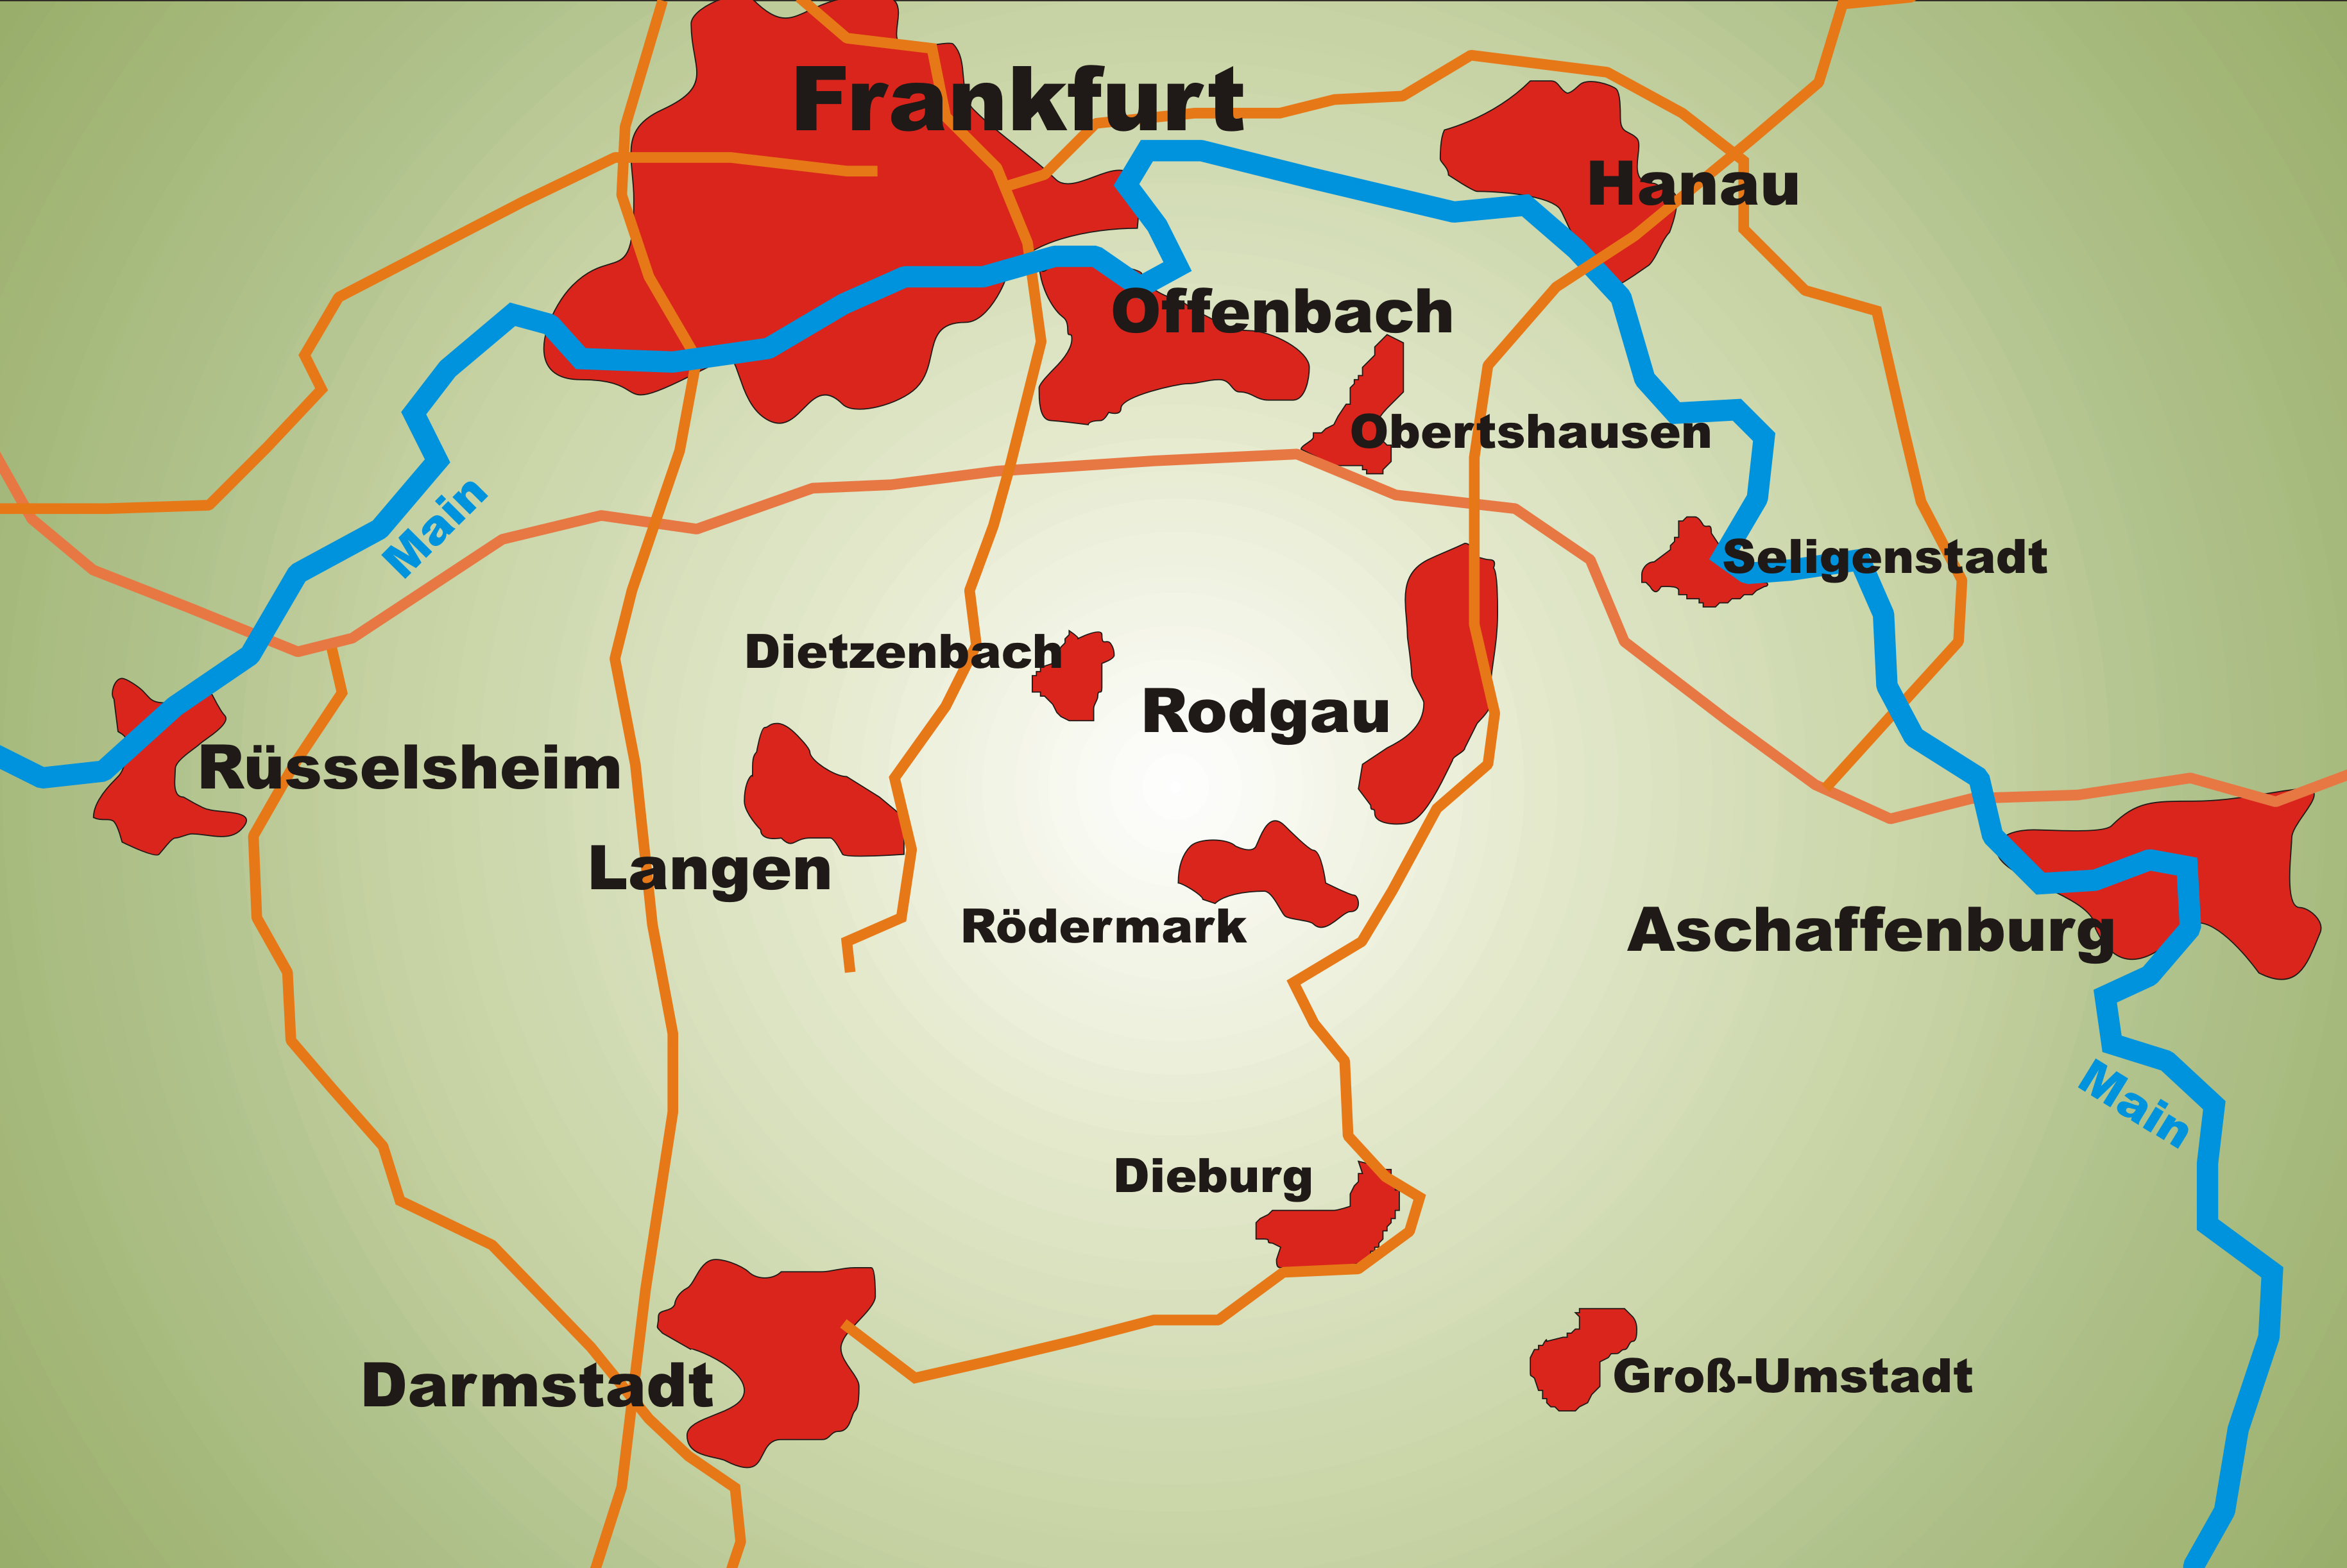 File:Lage von Rodgau.png - Wikimedia Commons